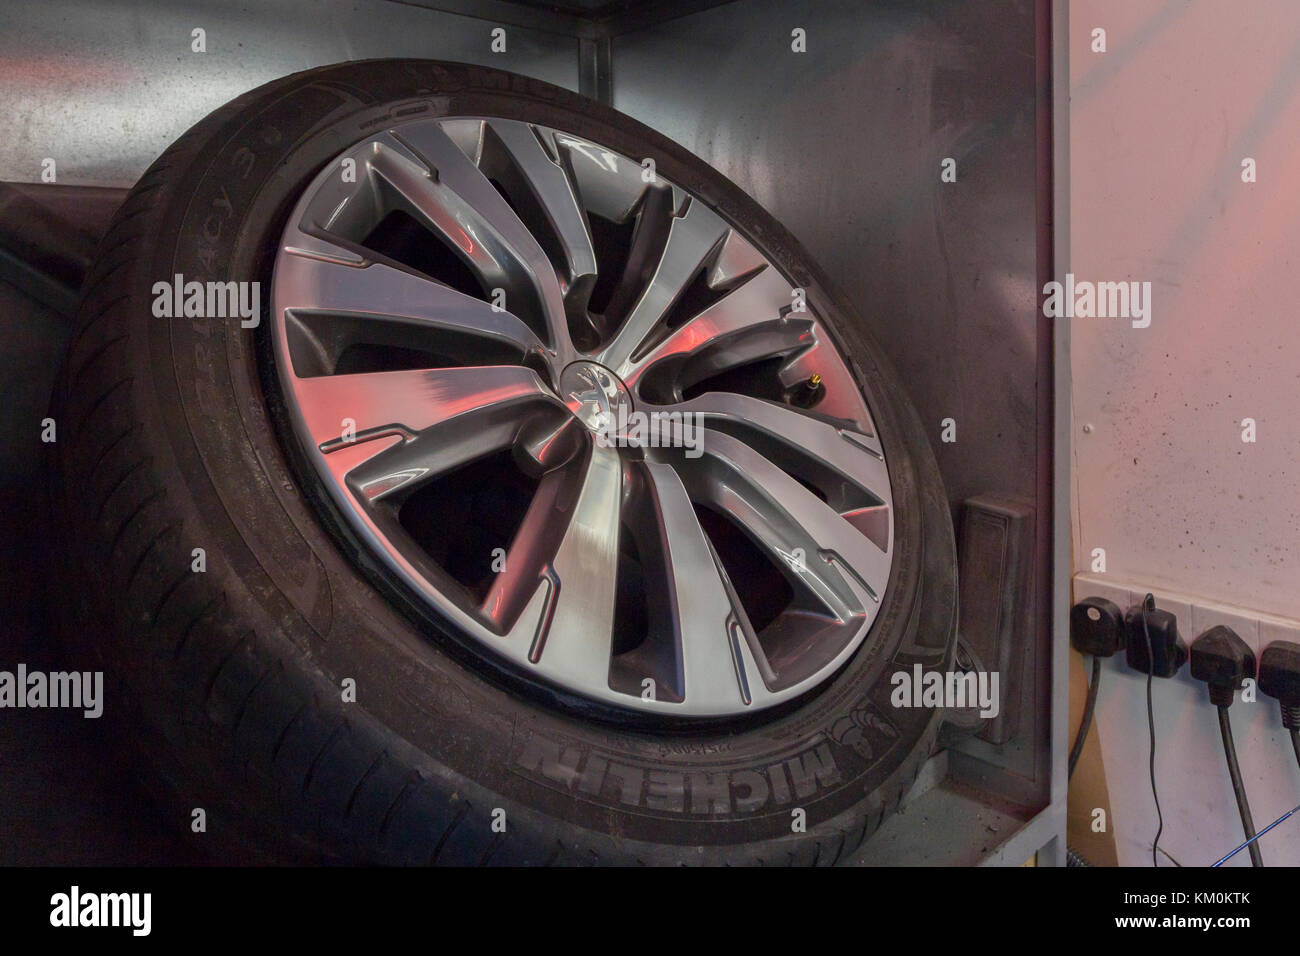 Ally wheels being reburbished in private garage by mobile machanic, Northampton U.K. - Stock Image